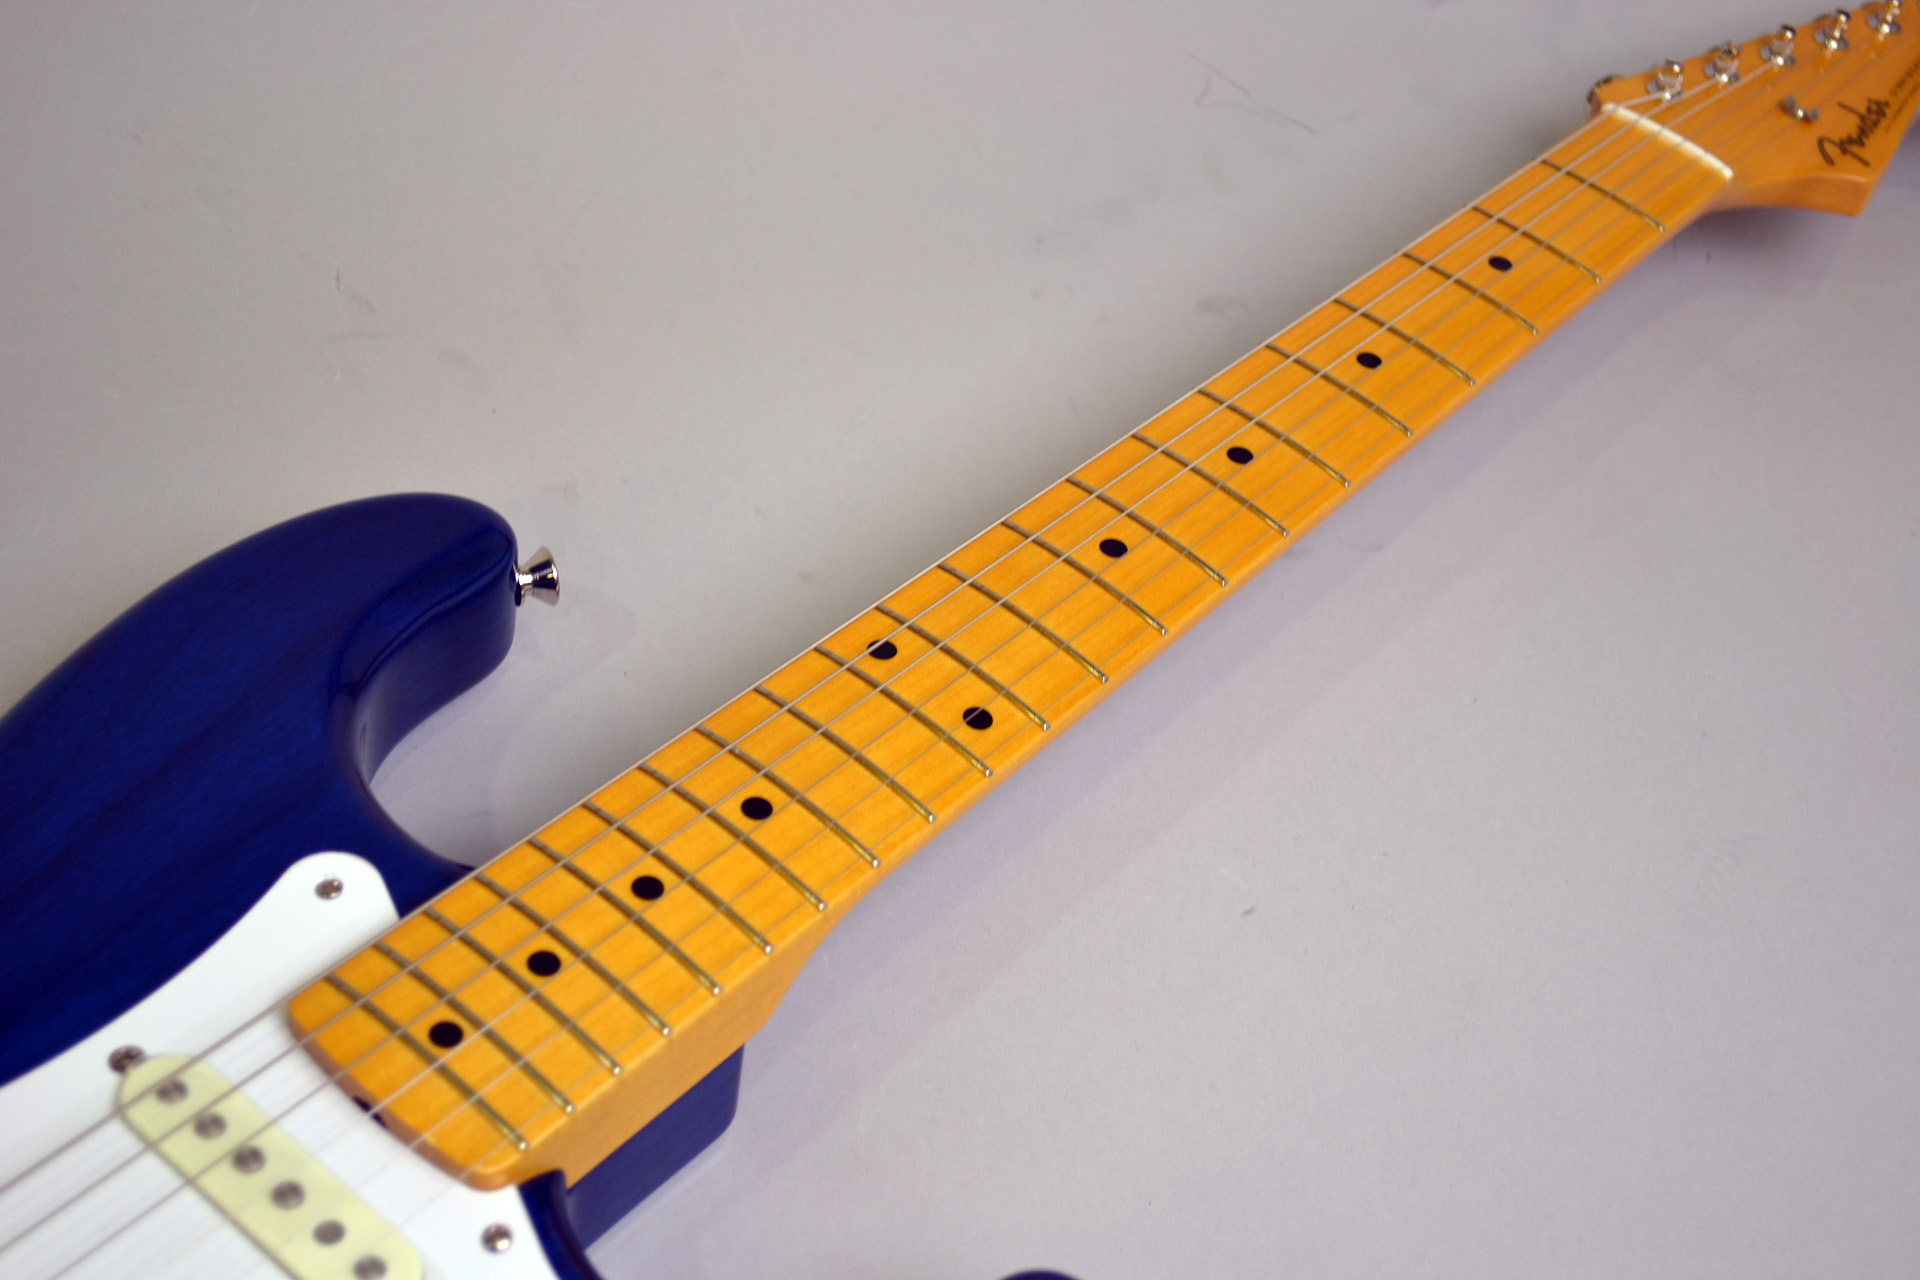 MADE IN JAPAN TRADITIONAL 58 STRATOCASTERのボディバック-アップ画像